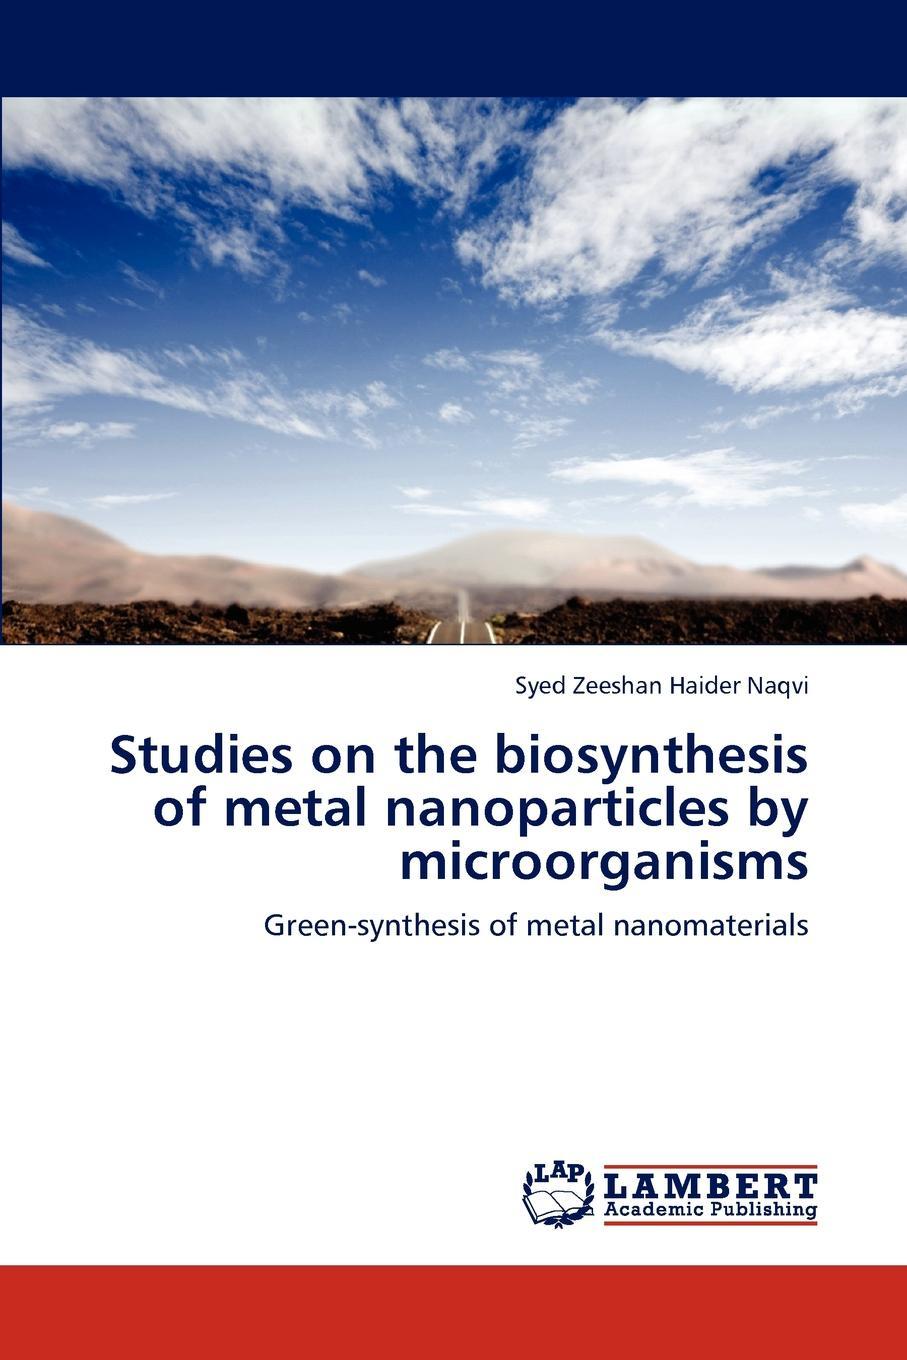 лучшая цена Naqvi Syed Zeeshan Haider Studies on the biosynthesis of metal nanoparticles by microorganisms